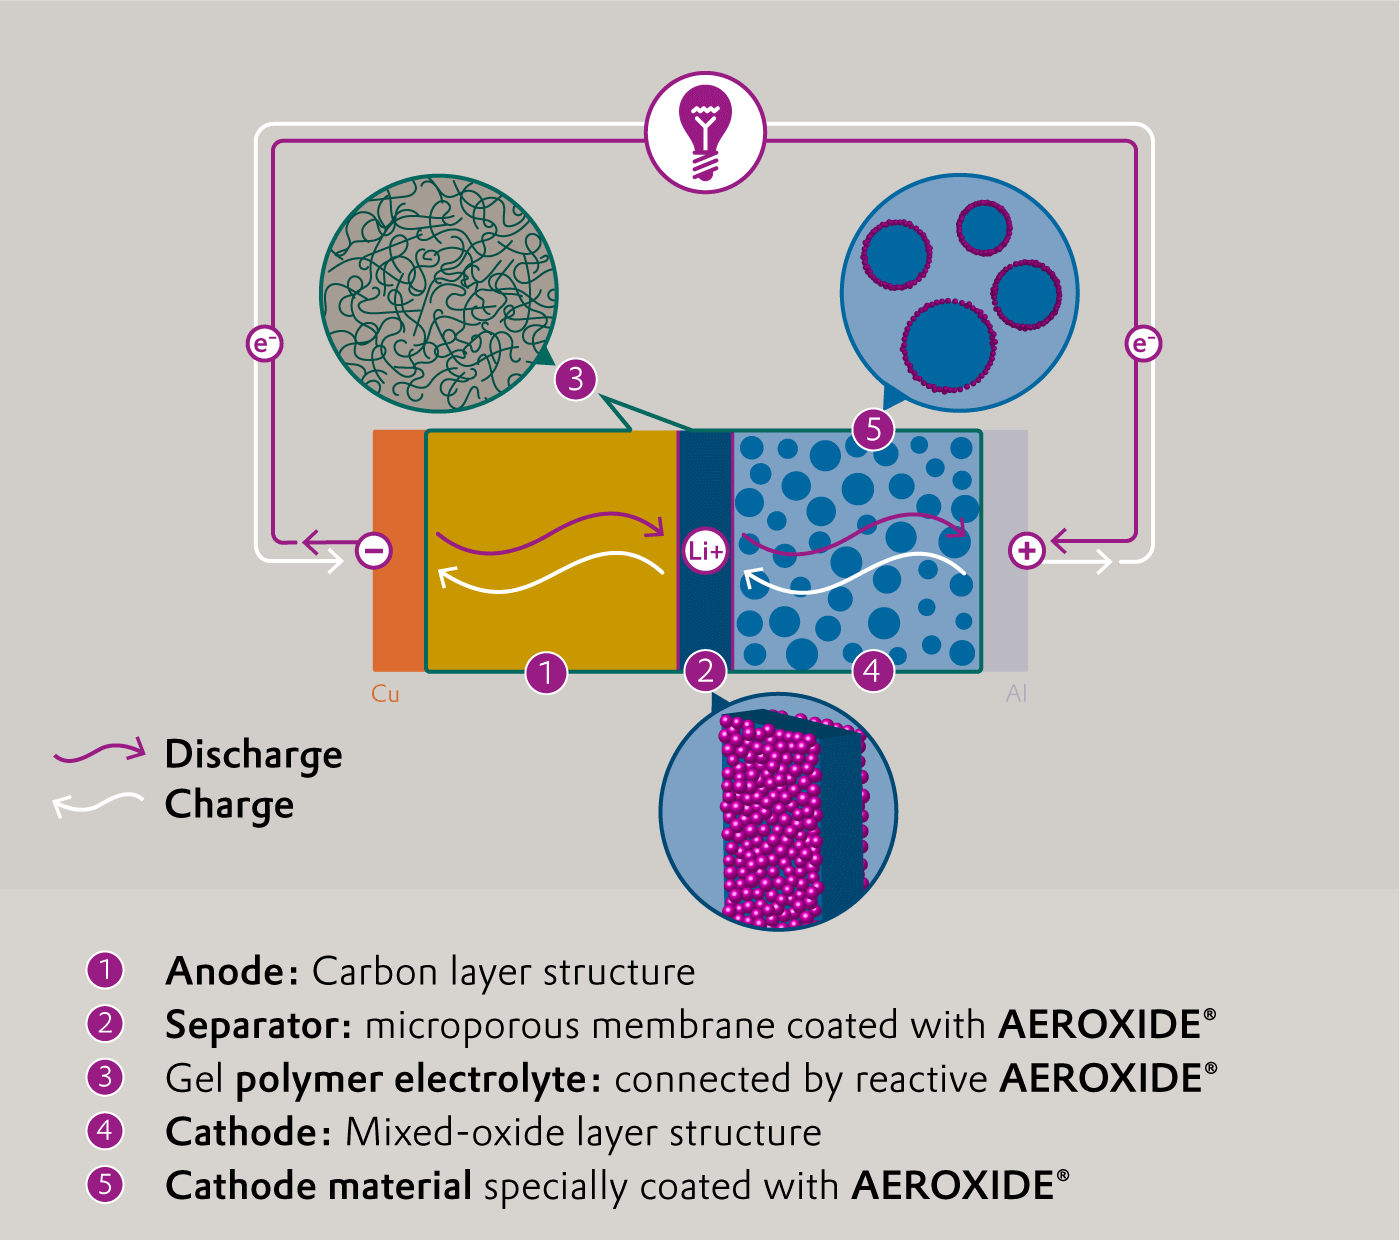 Circuit of a lithium-ion battery whose cathode and separator are coated with AEROXIDE®